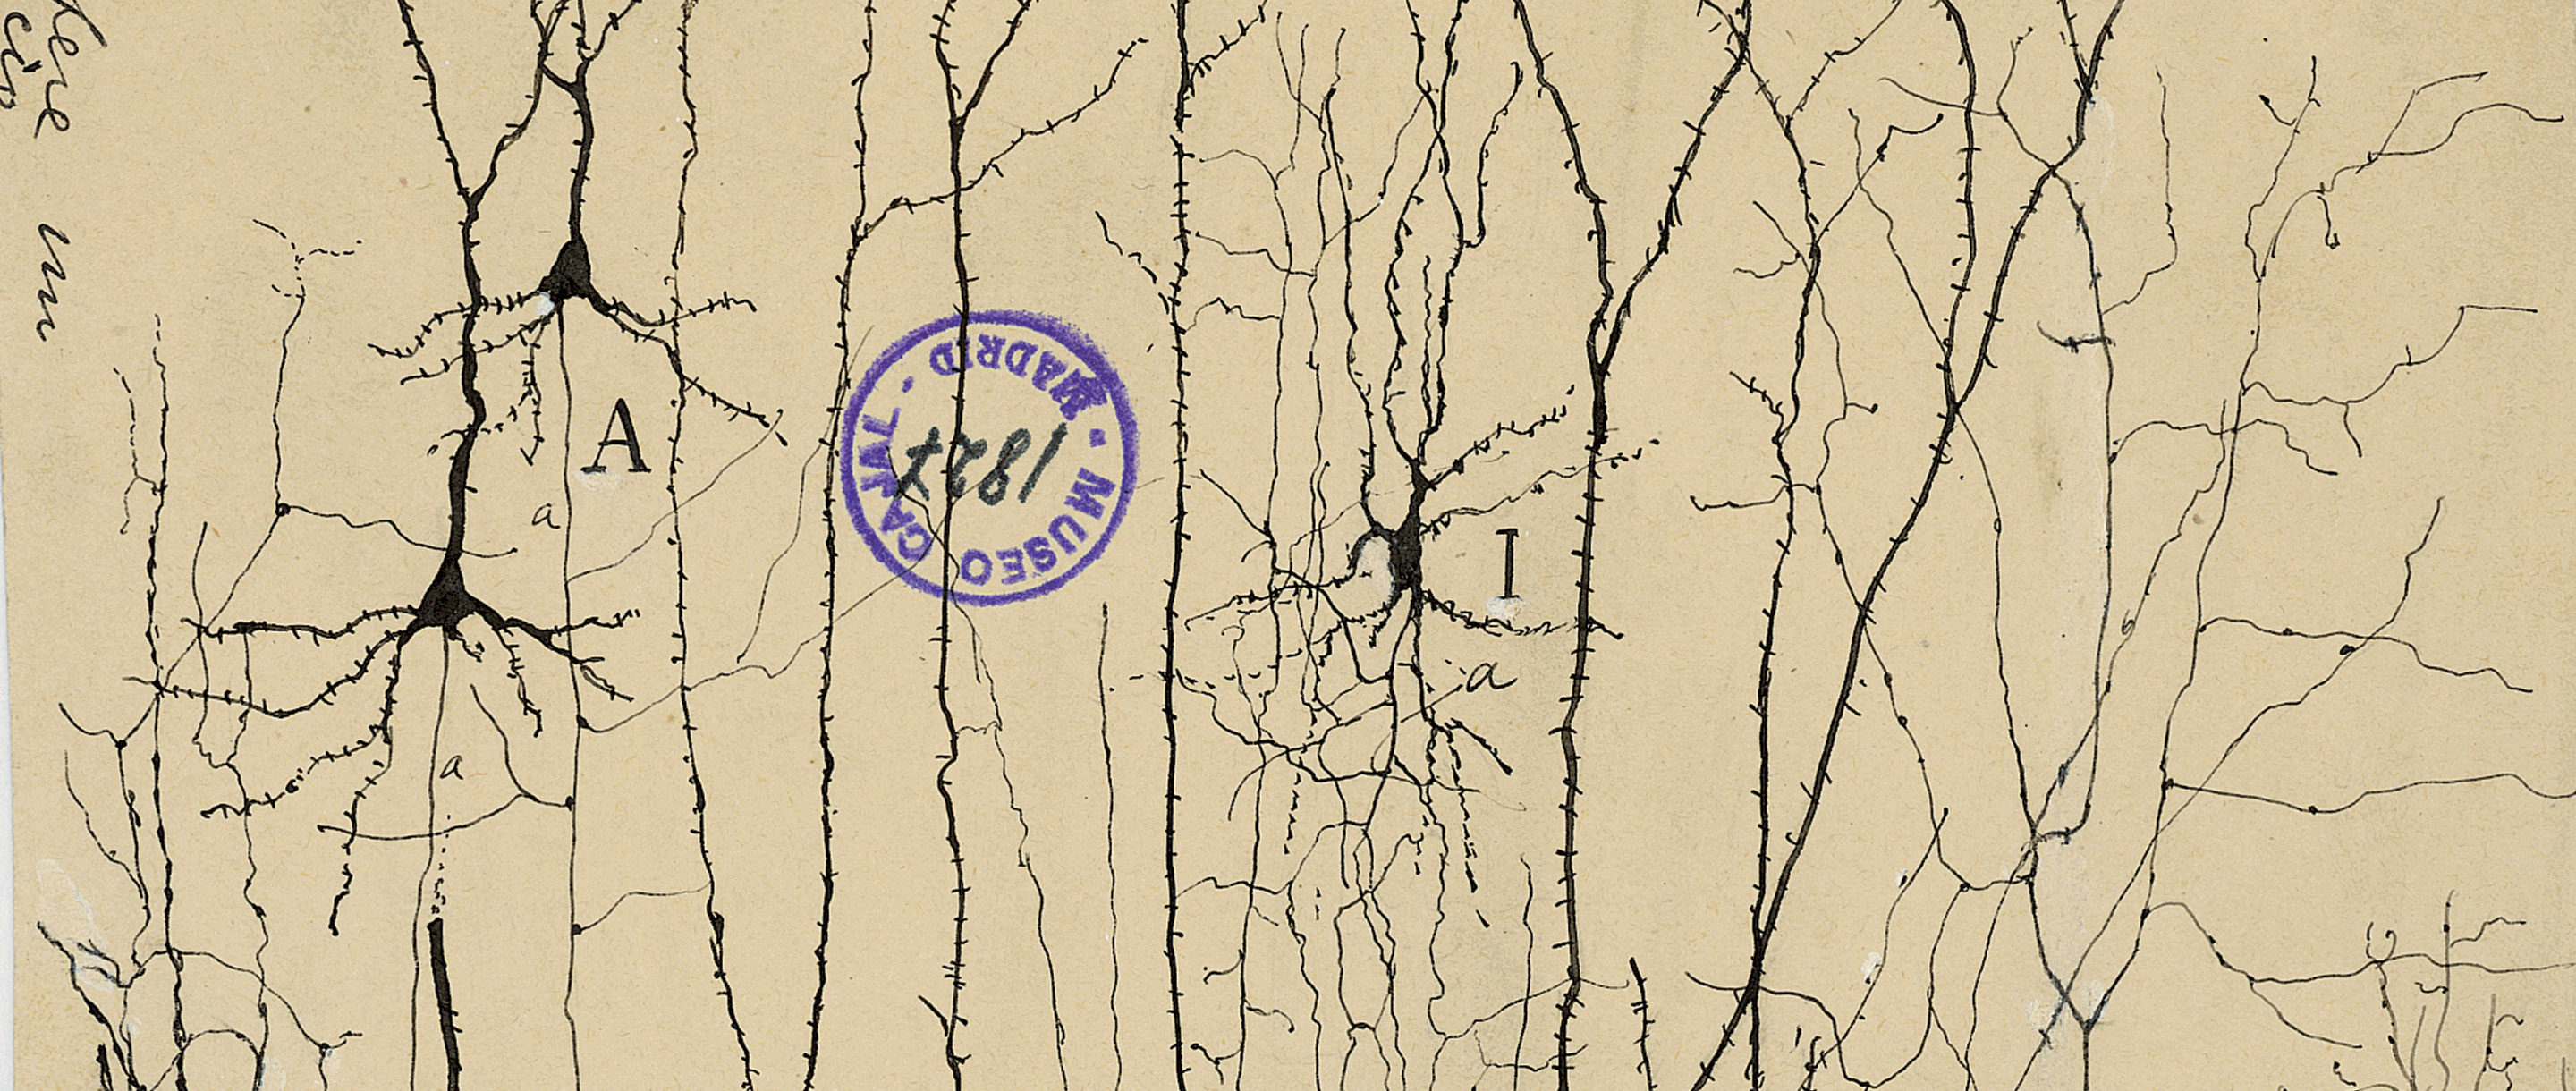 Generations of neuroscientists have wondered why the elegant and historically important drawings of Santiago Ramón y Cajal, the field's founder, are marred by a prominent blue stamp. The answer has finally come to light.